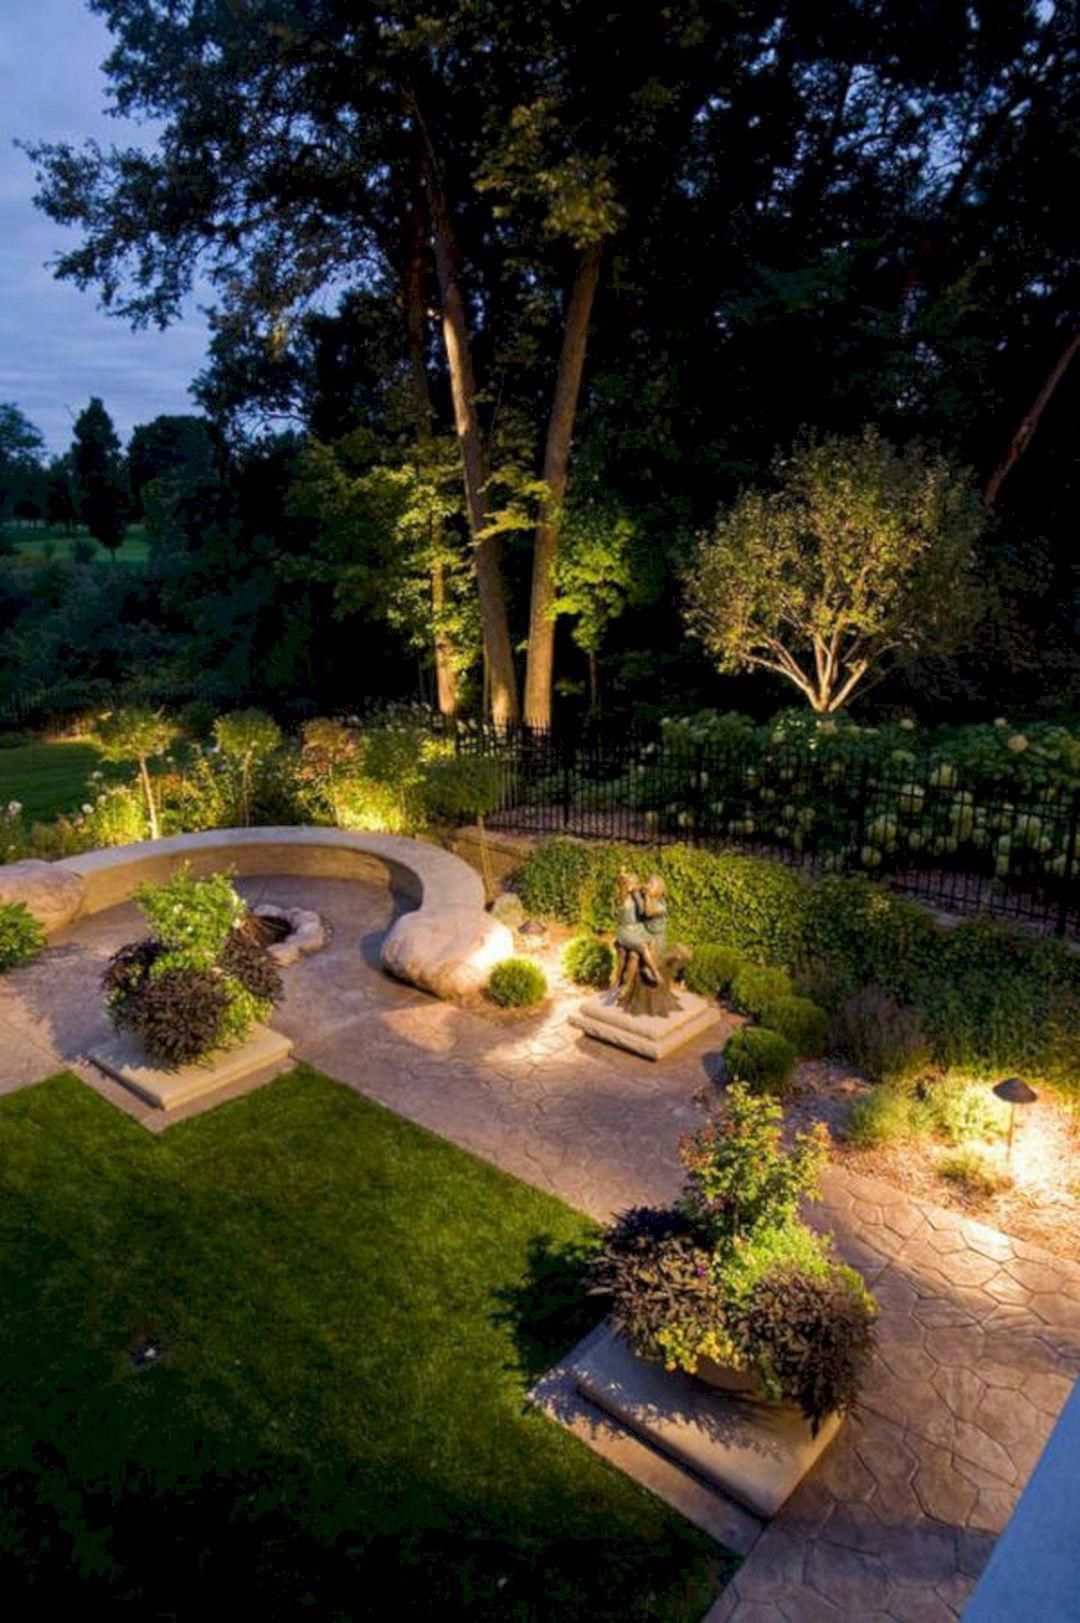 The 10 Best Outdoor Lighting Ideas That Bring Magic Into The Backyard 2056708870 Yar Outdoor Landscape Lighting Landscape Lighting Design Outdoor Landscaping